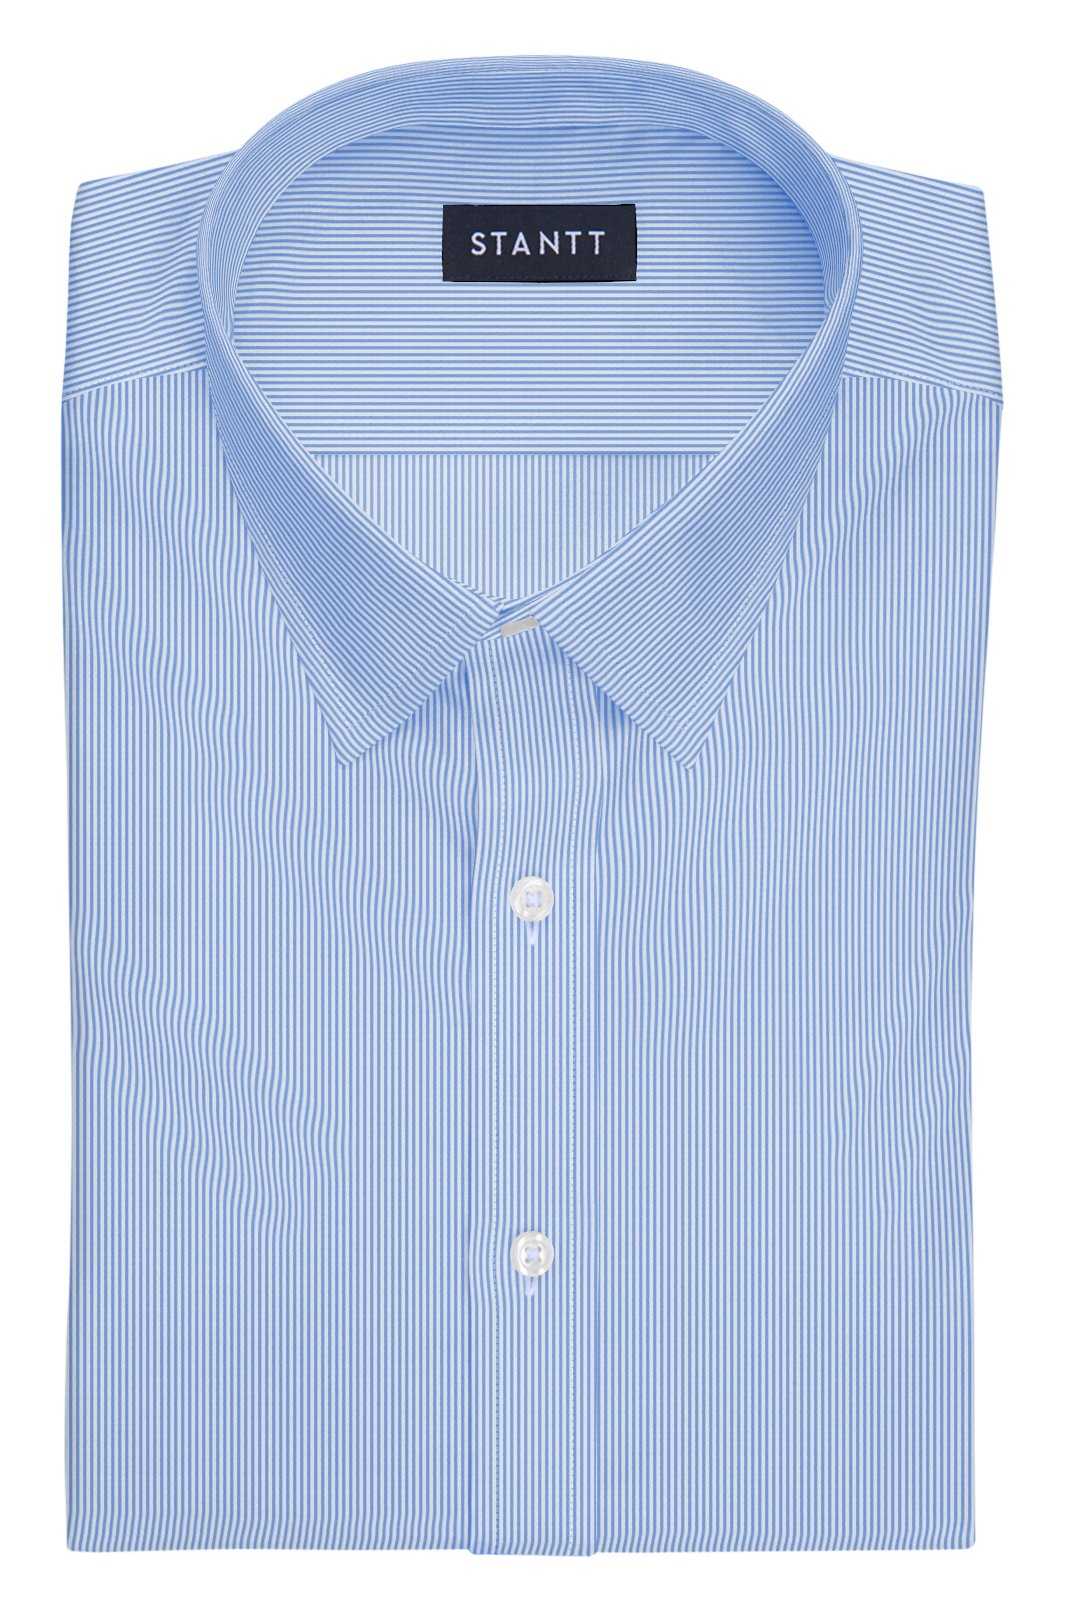 Blue Bengal Stripe: Semi-Spread Collar, French Cuff